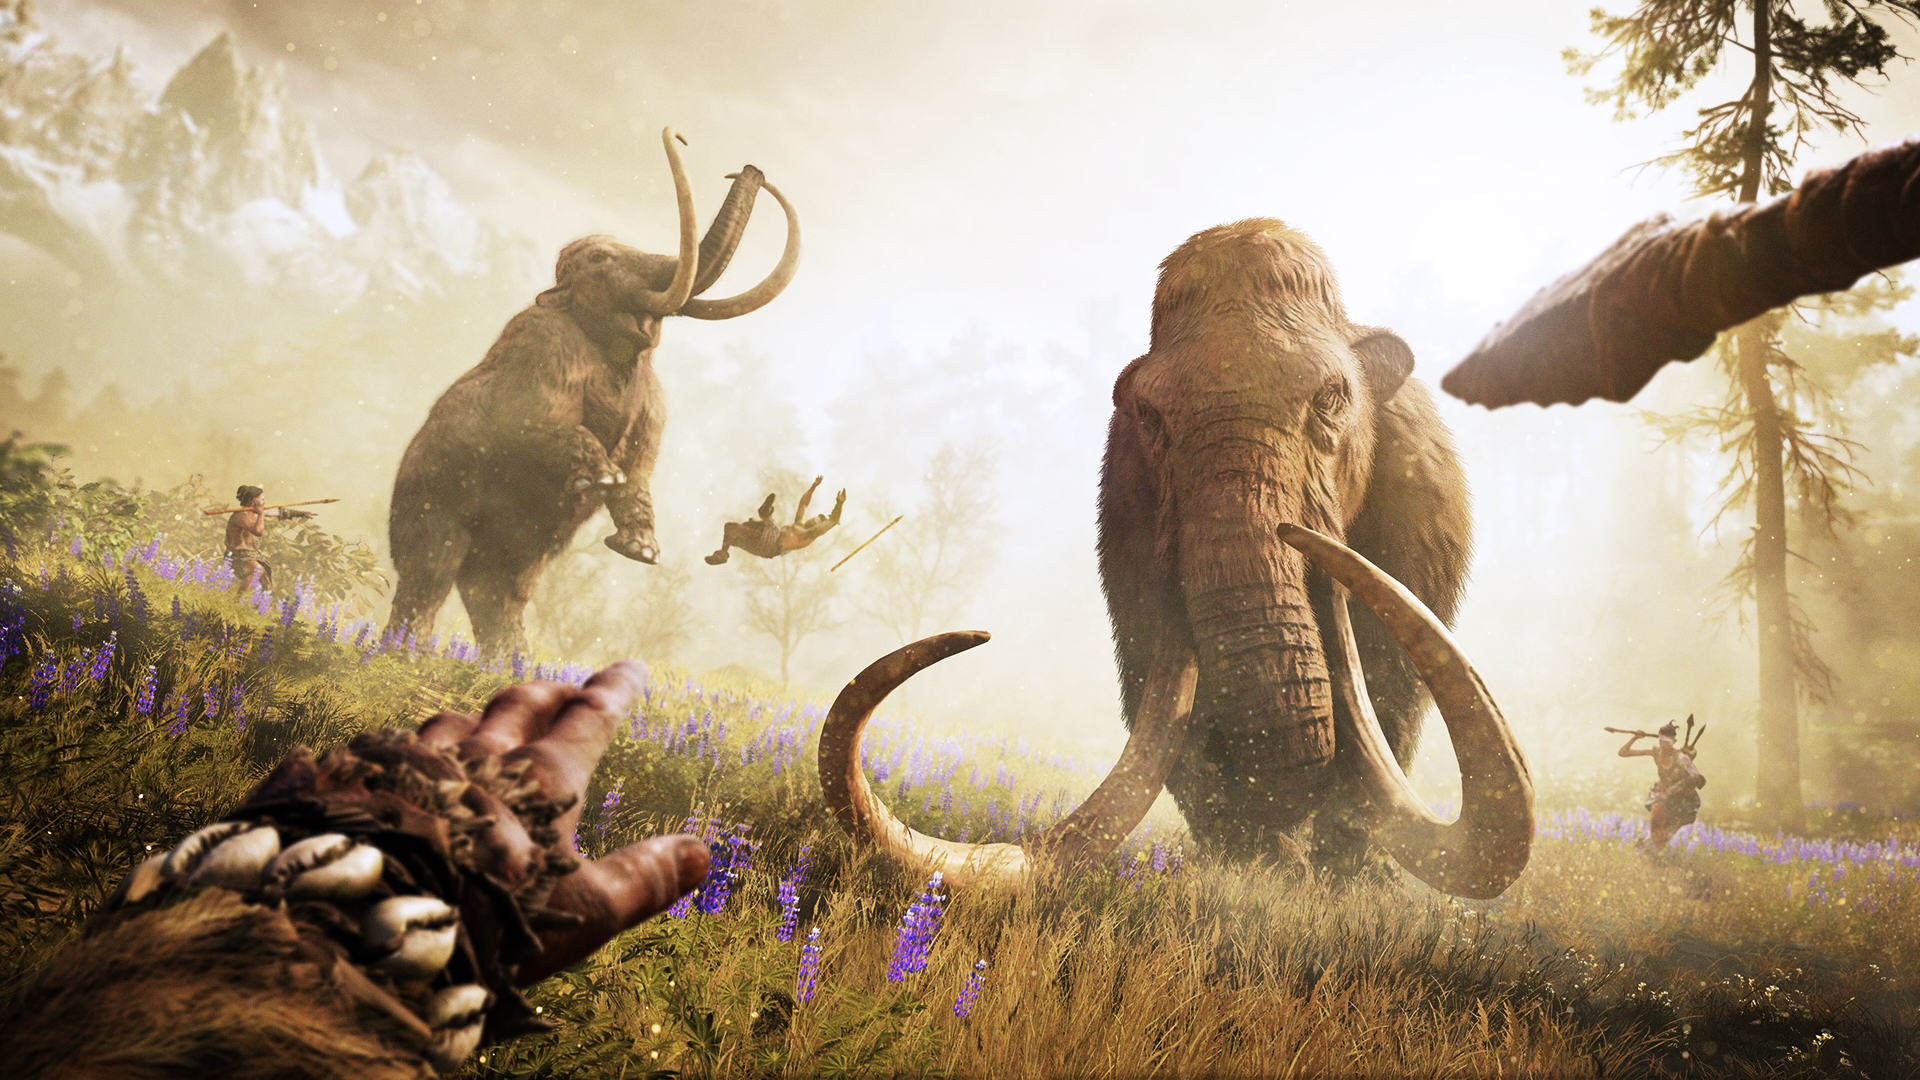 Ubisoft Show Off Far Cry Primal Trailer And Gameplay Walkthrough Mammoth Hunt GOLD 1080p 221522